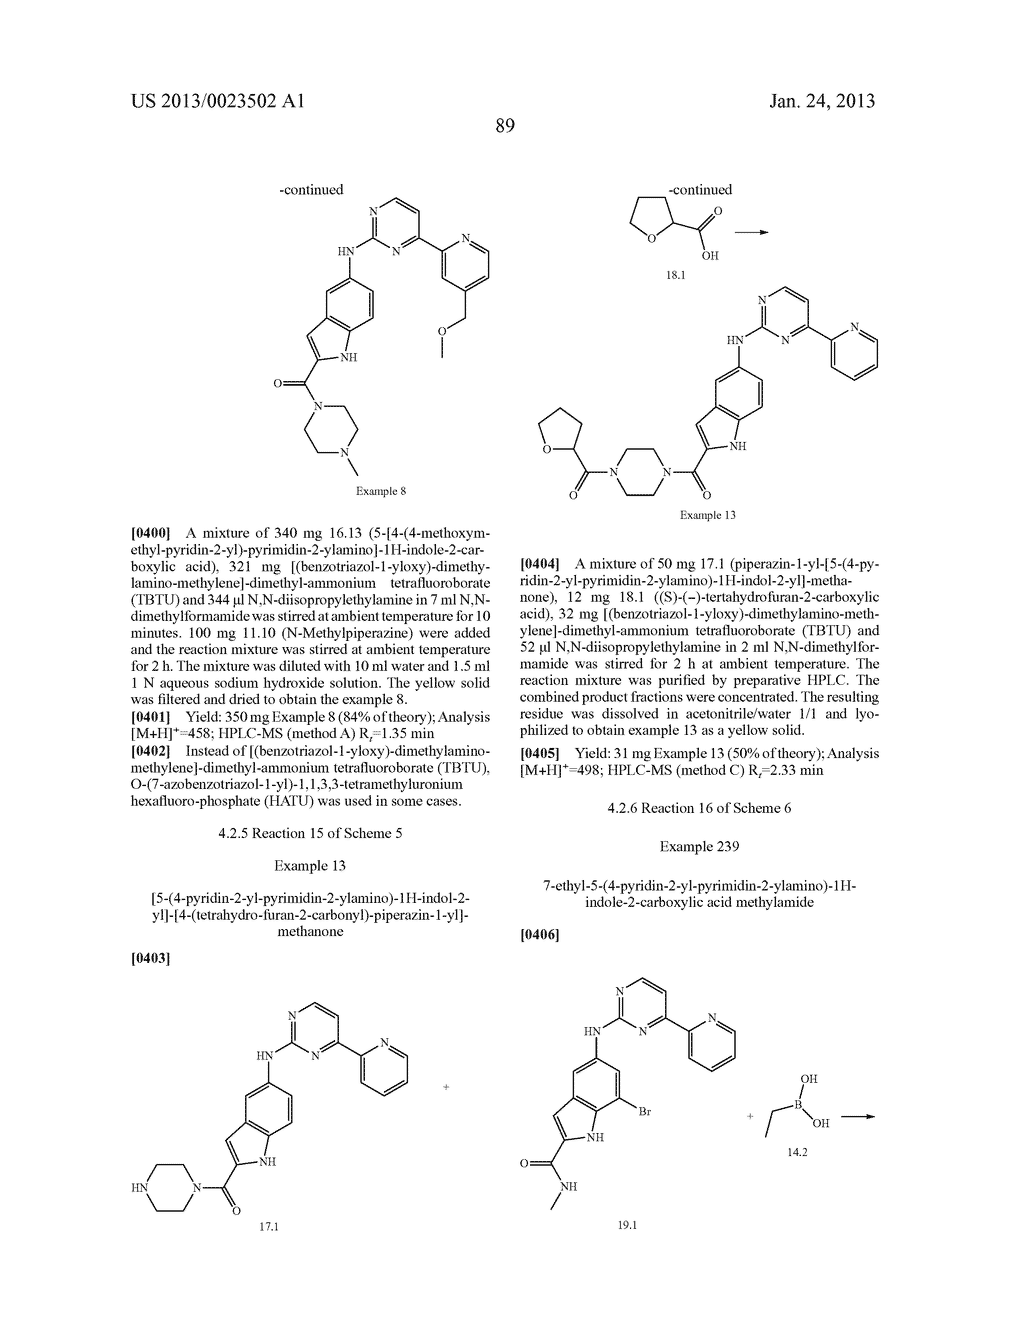 SUBSTITUTED PYRIDINYL-PYRIMIDINES AND THEIR USE AS MEDICAMENTS - diagram, schematic, and image 90